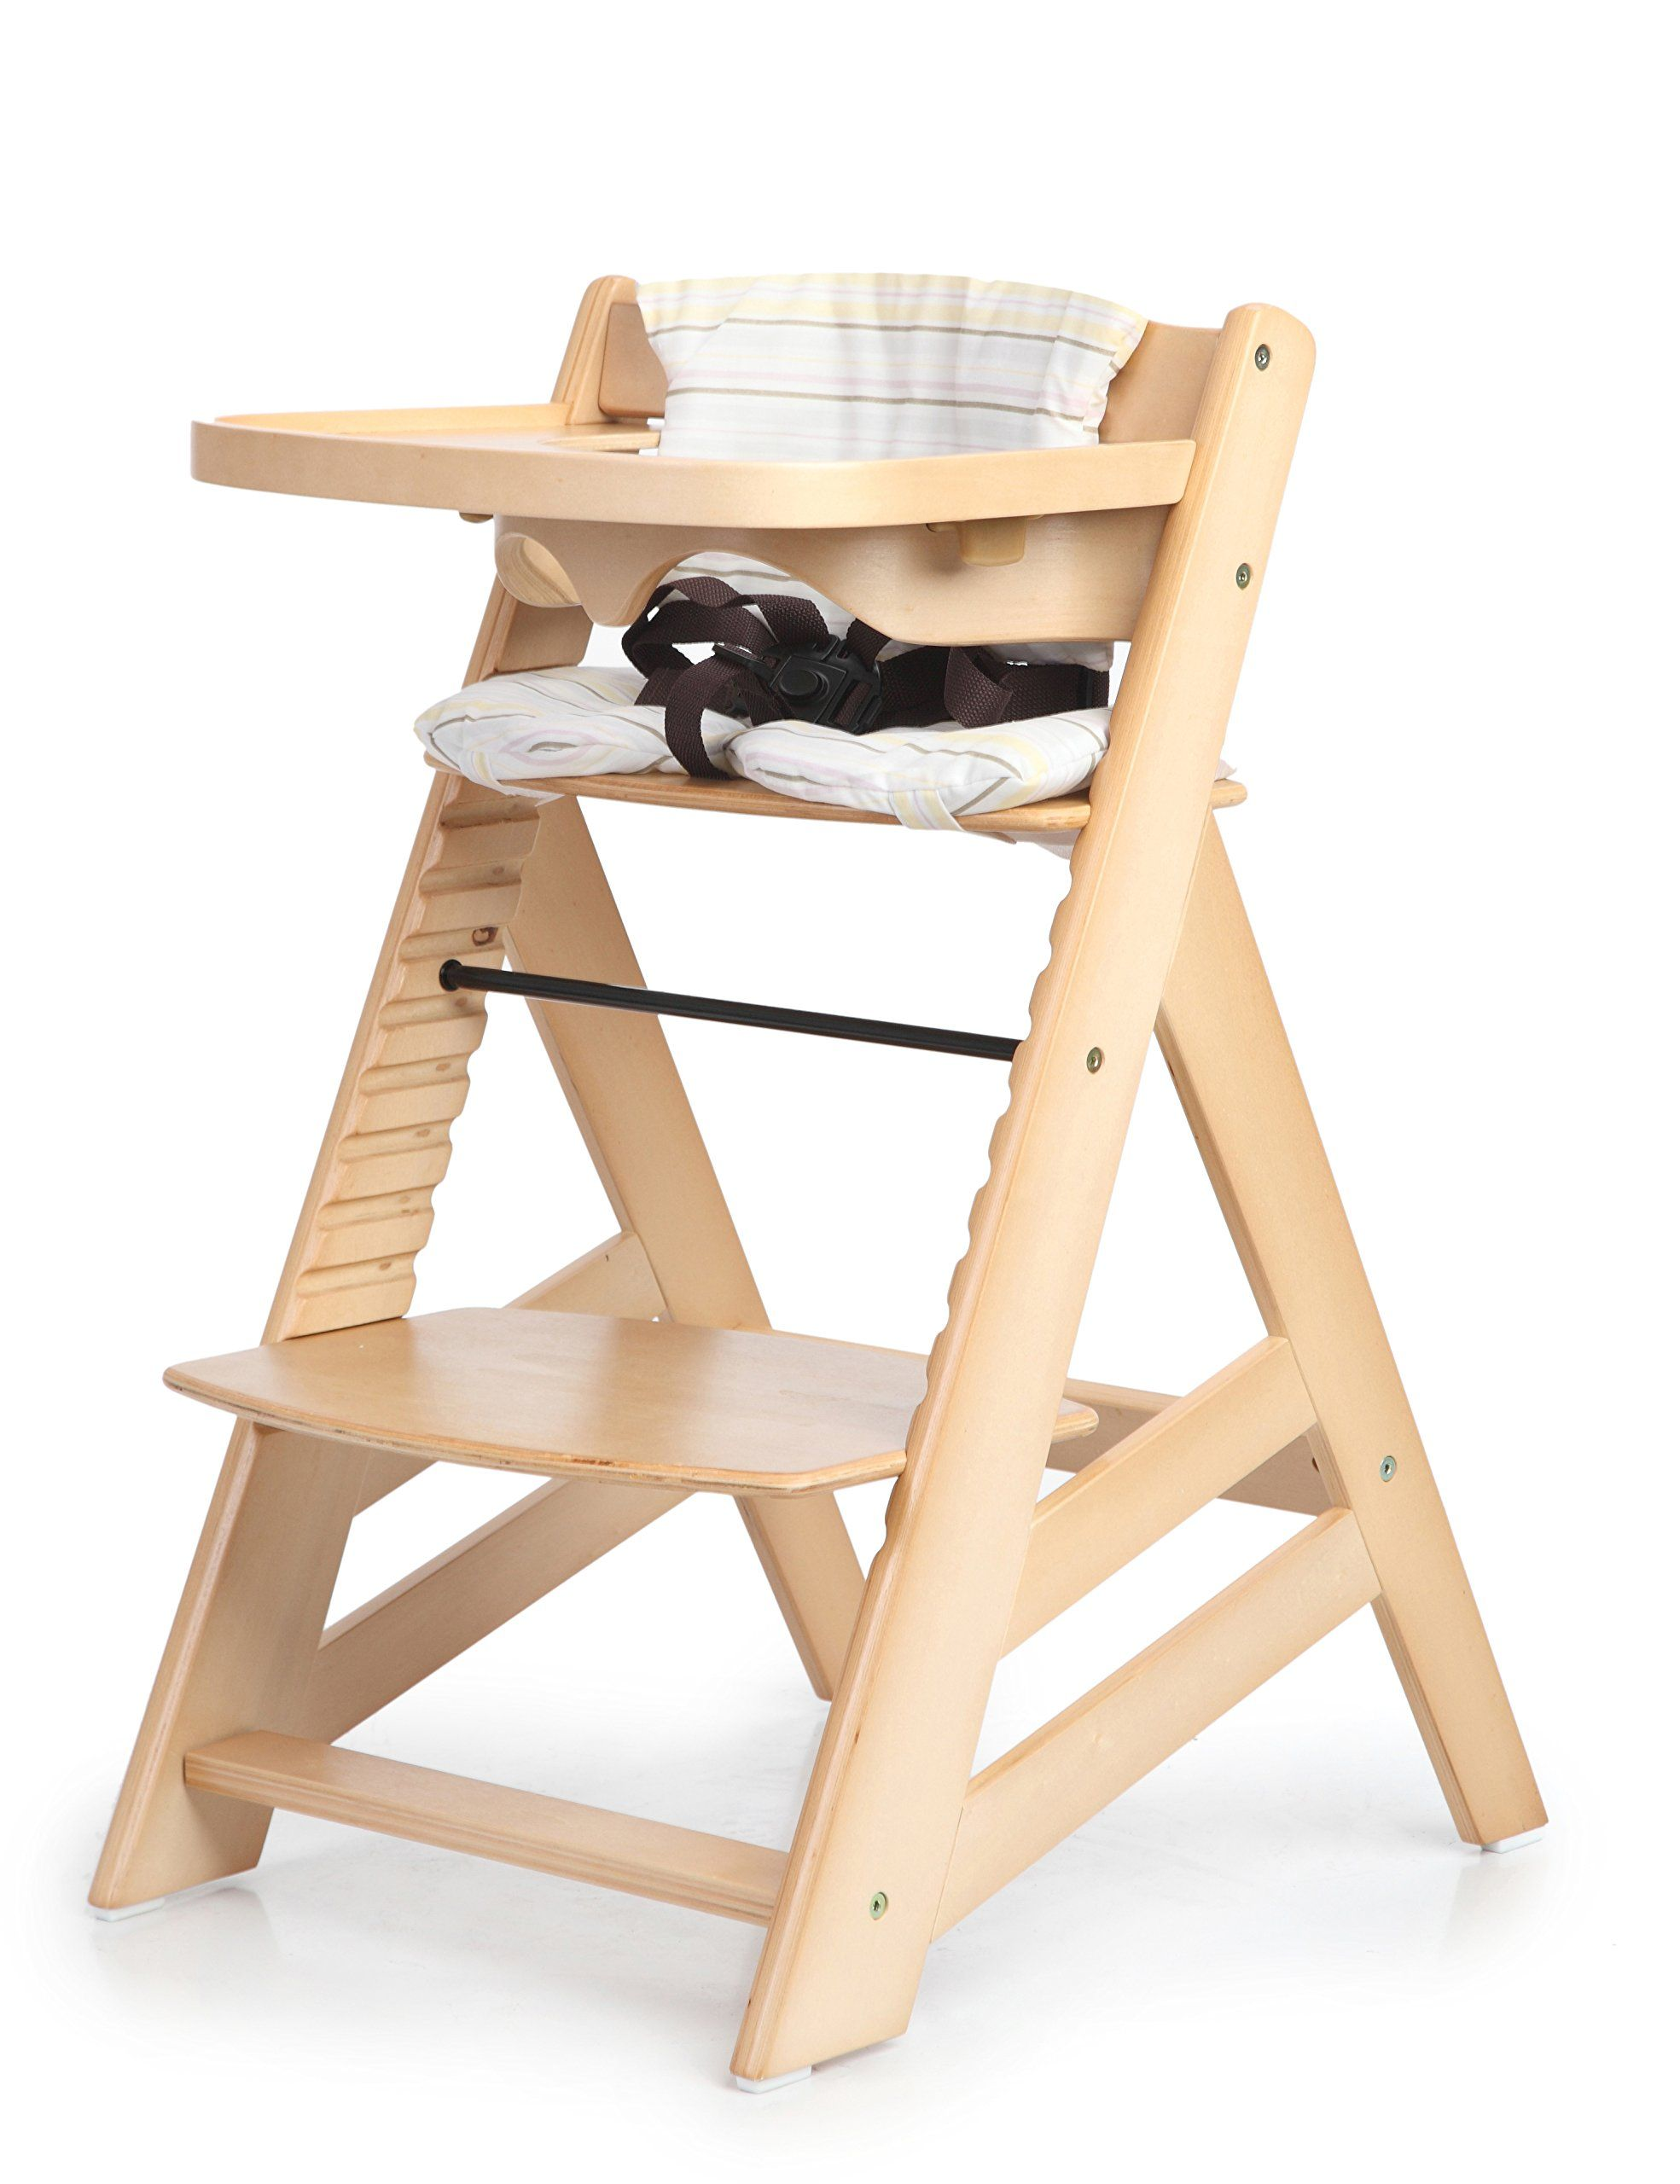 natural gear folding chair rocking glider sepnine height adjustable wooden highchair baby high